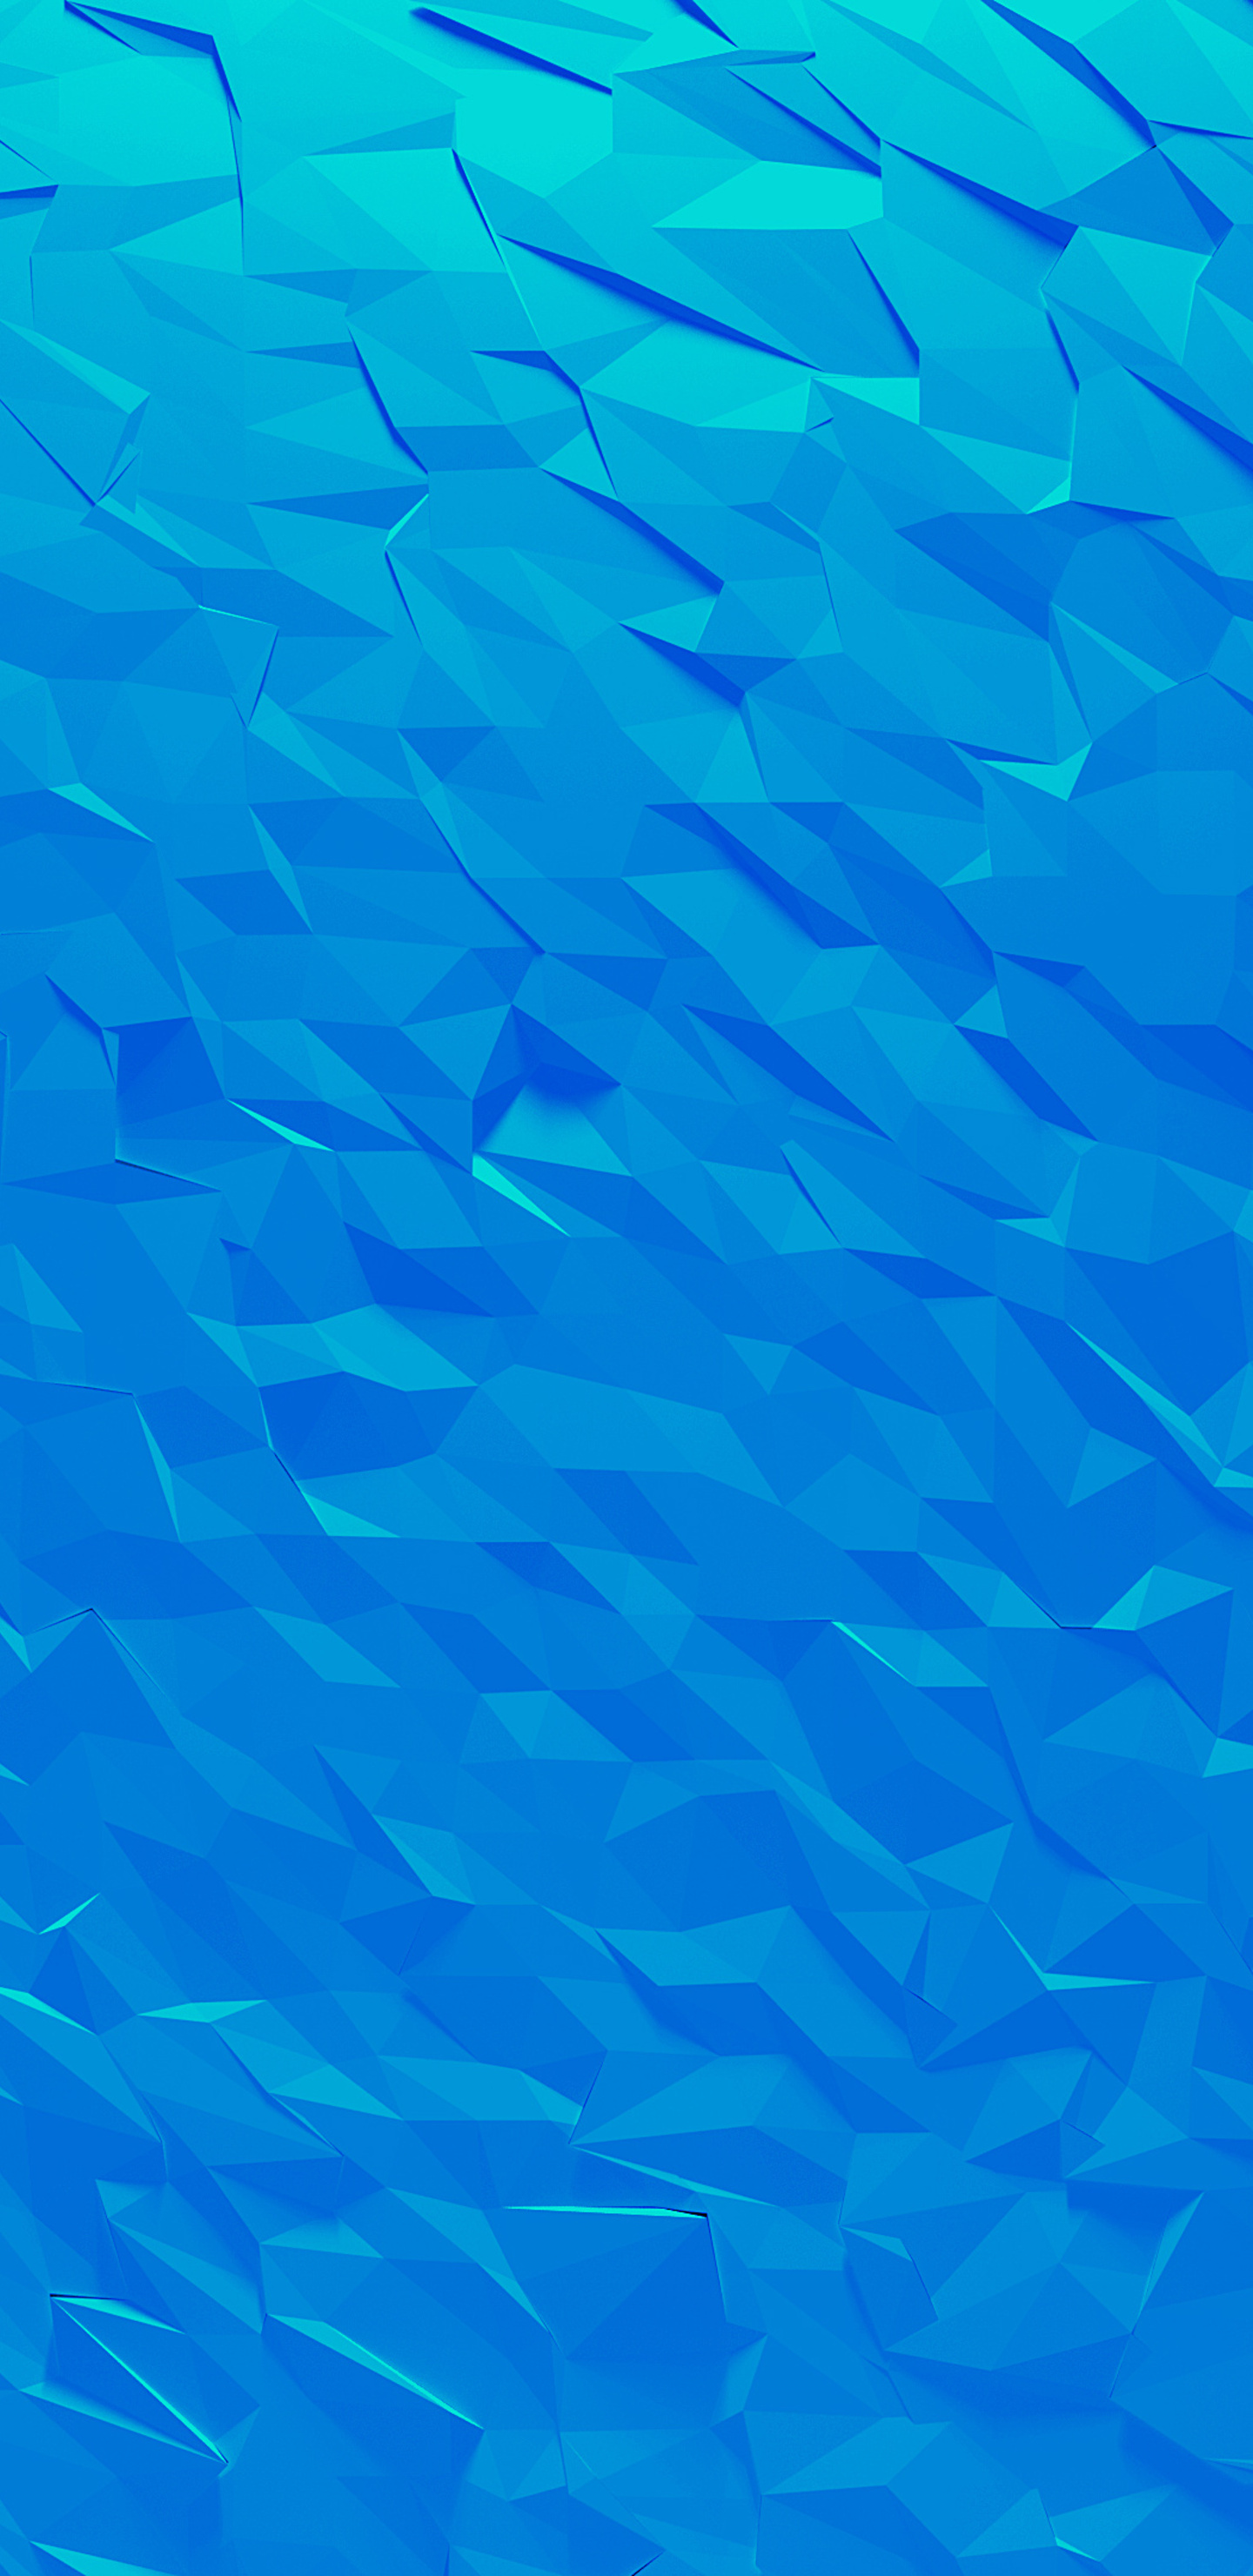 1440x2960 abstract low poly 3d blue background 4k samsung galaxy note 9 8 s9 s8 s8 qhd hd 4k - 3d wallpaper for note 8 ...